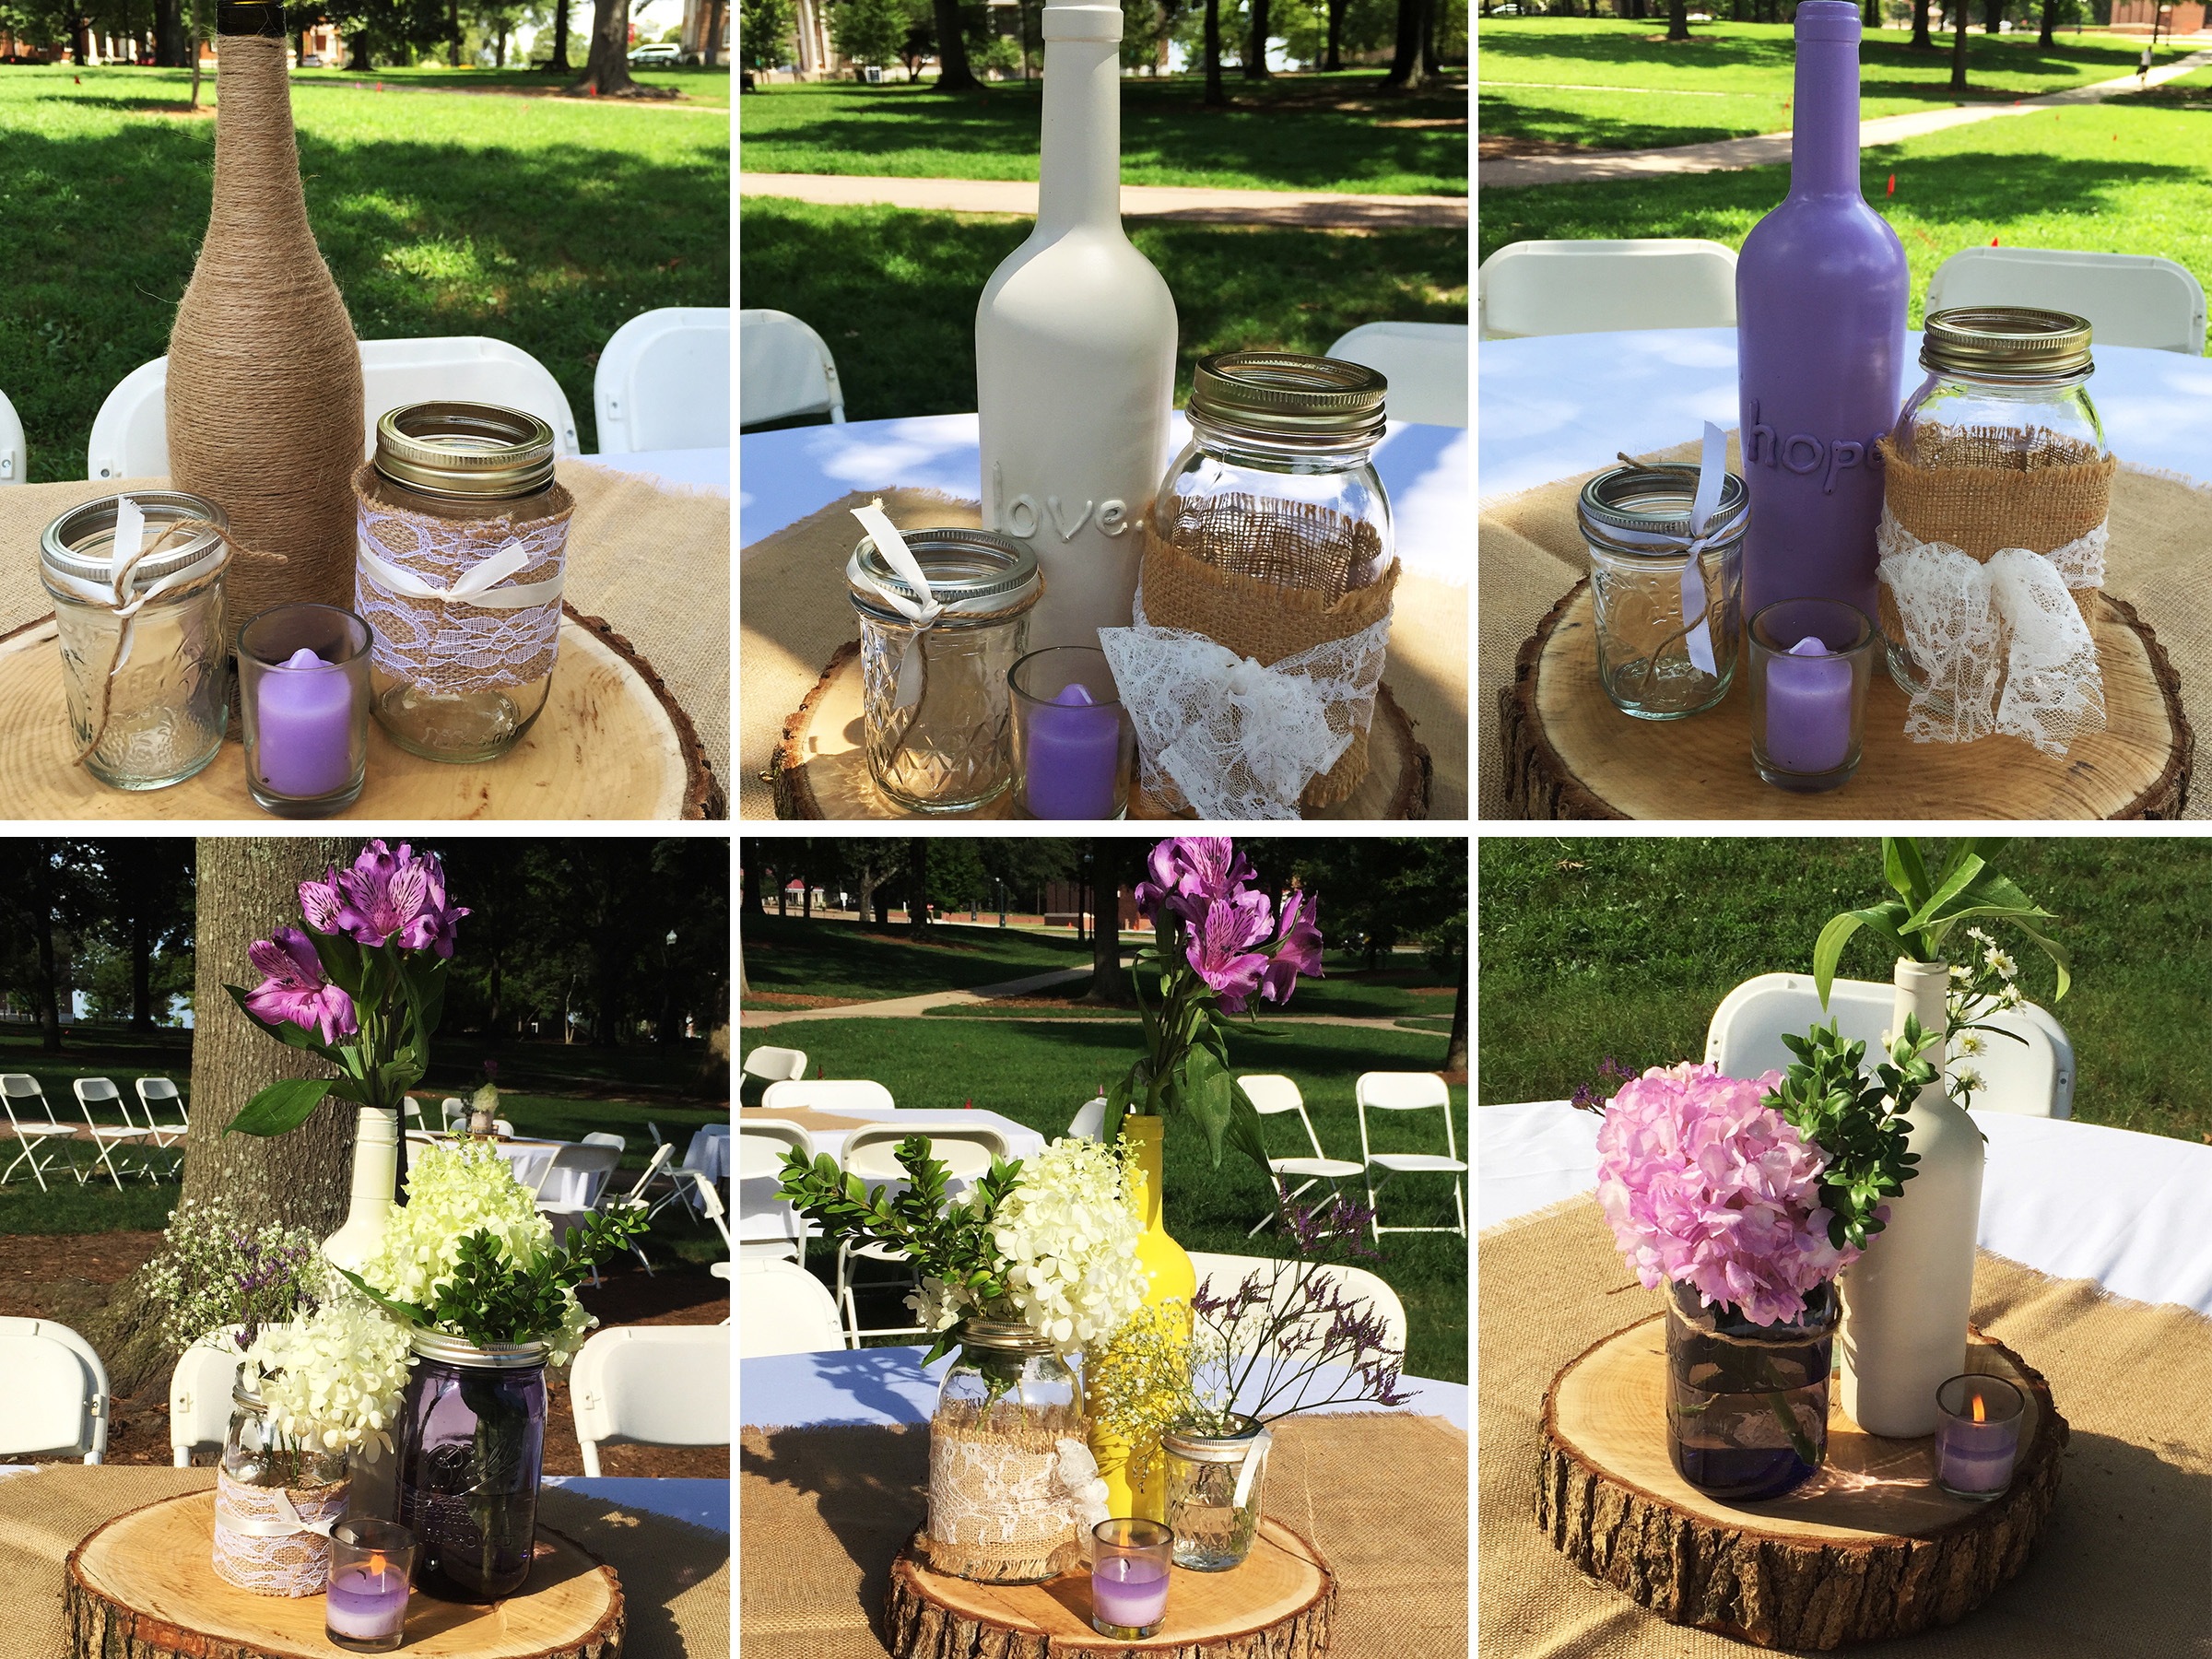 Do it yourself wedding decorations from pinterest that pinterest diy junglespirit Choice Image